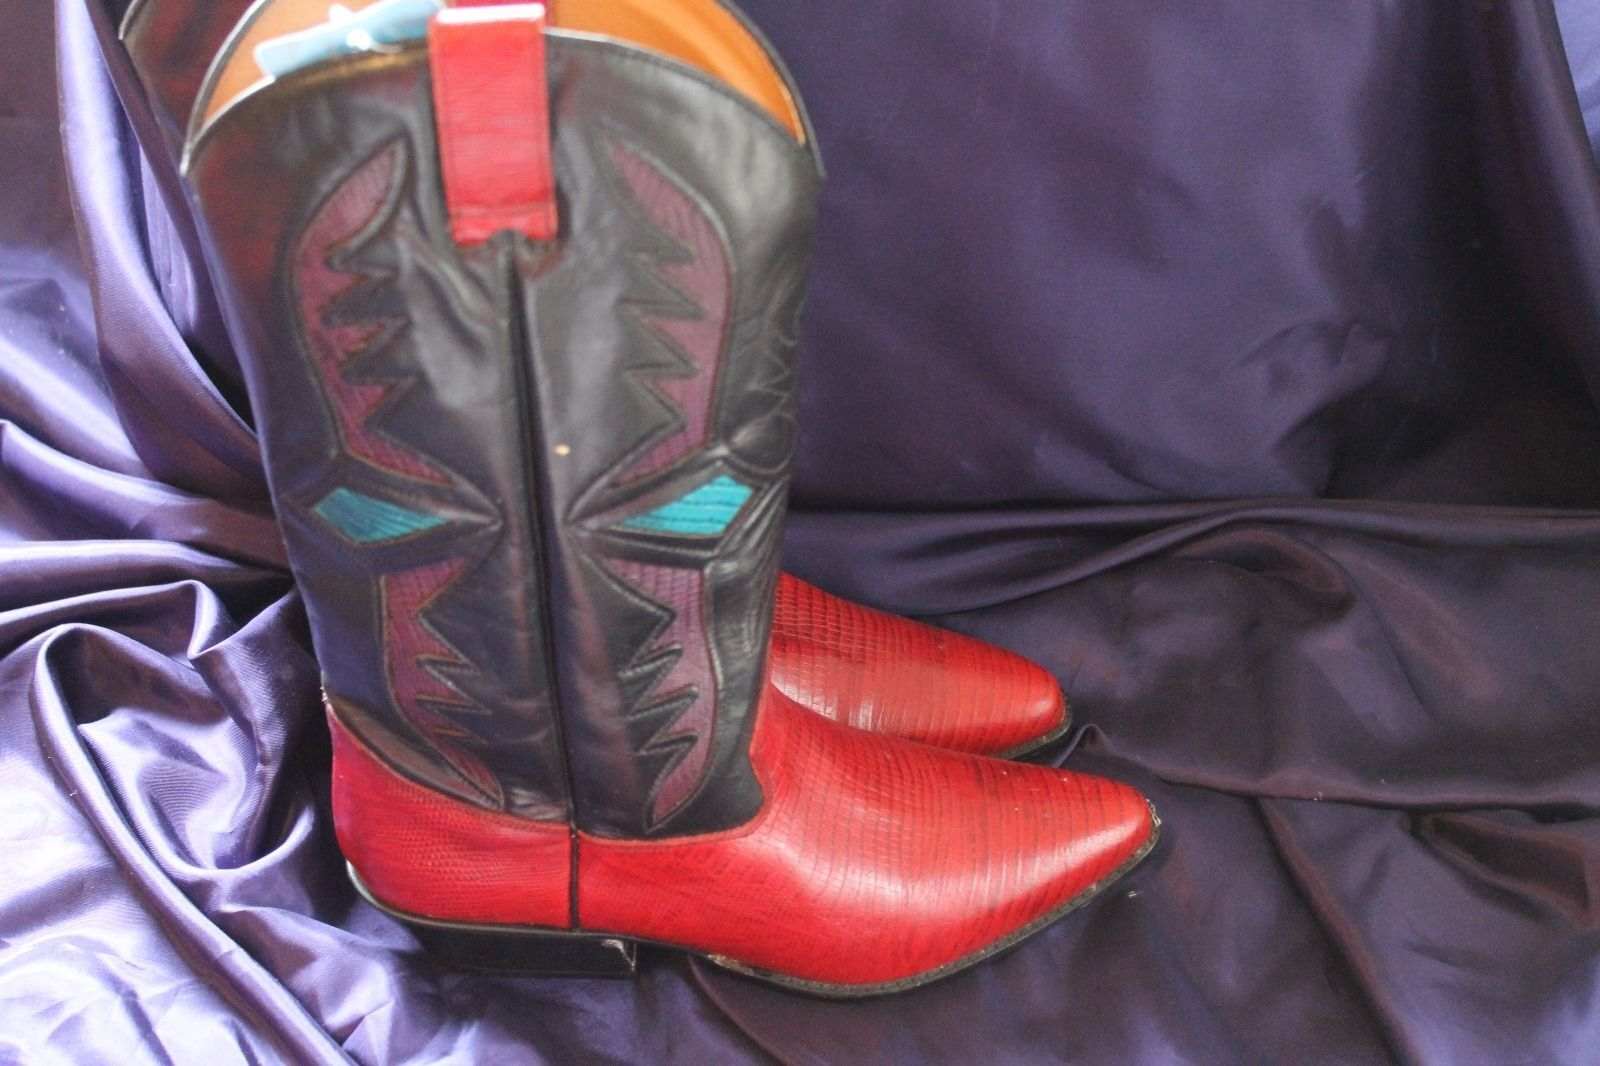 Women's Trennis Multi-colord Multi-colord Multi-colord Western Cowboy Boots Size 8 M Made in Brazil c9d383